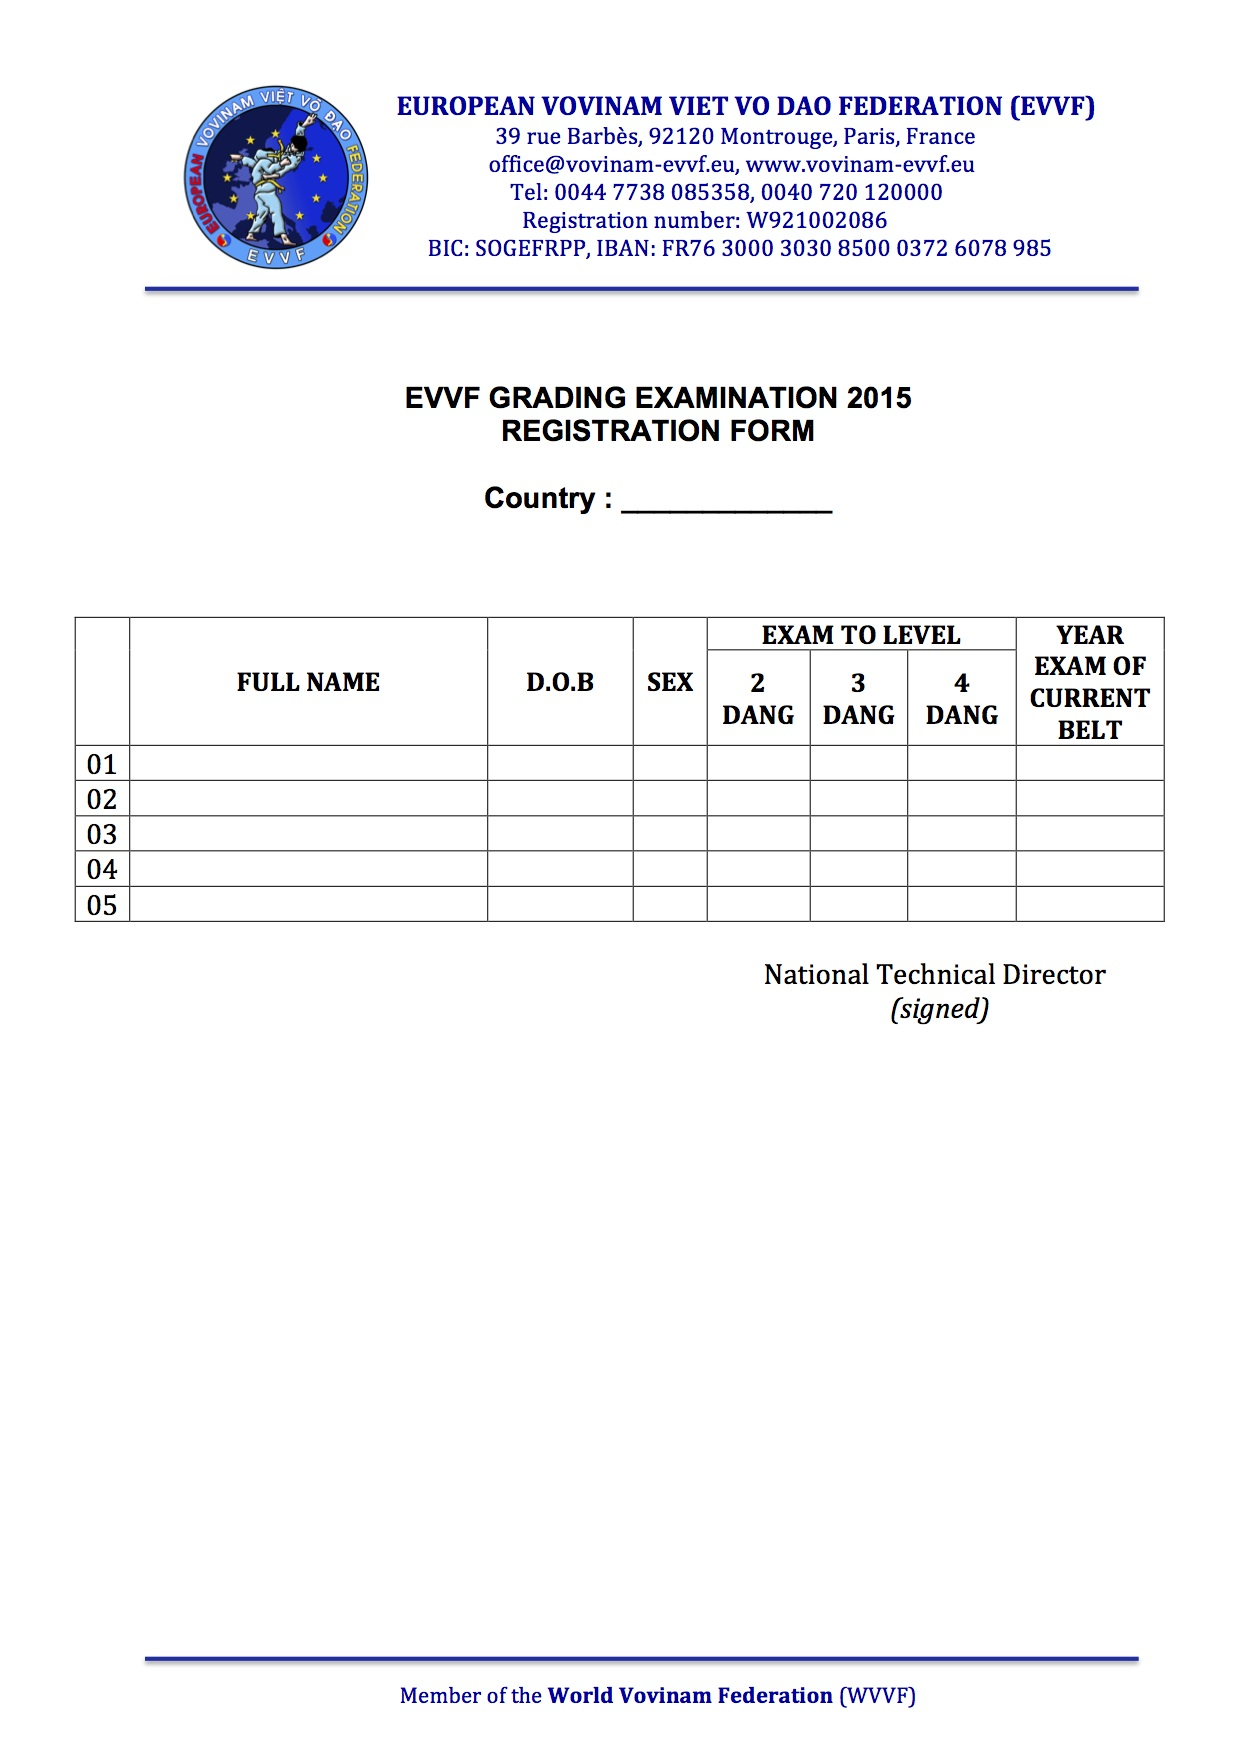 EVVF Grading Exam 2015 - Registration